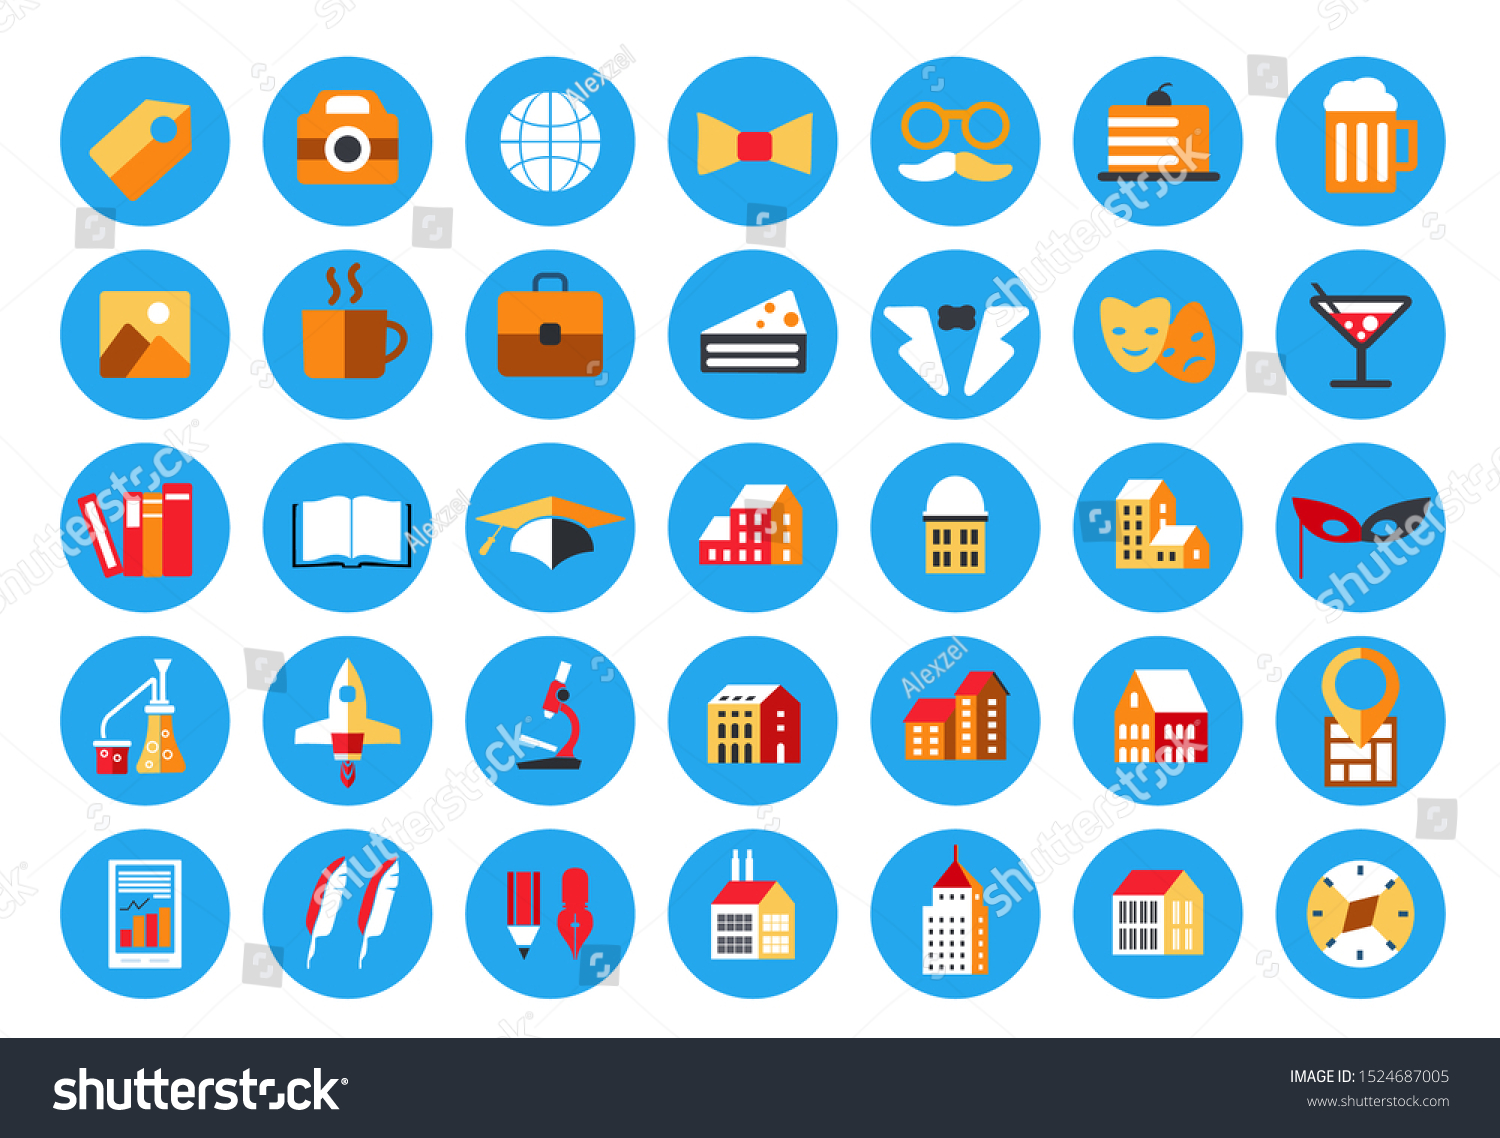 Instagram Highlights Stories Covers Icons Pastel Stock Vector Royalty Free 1524687005